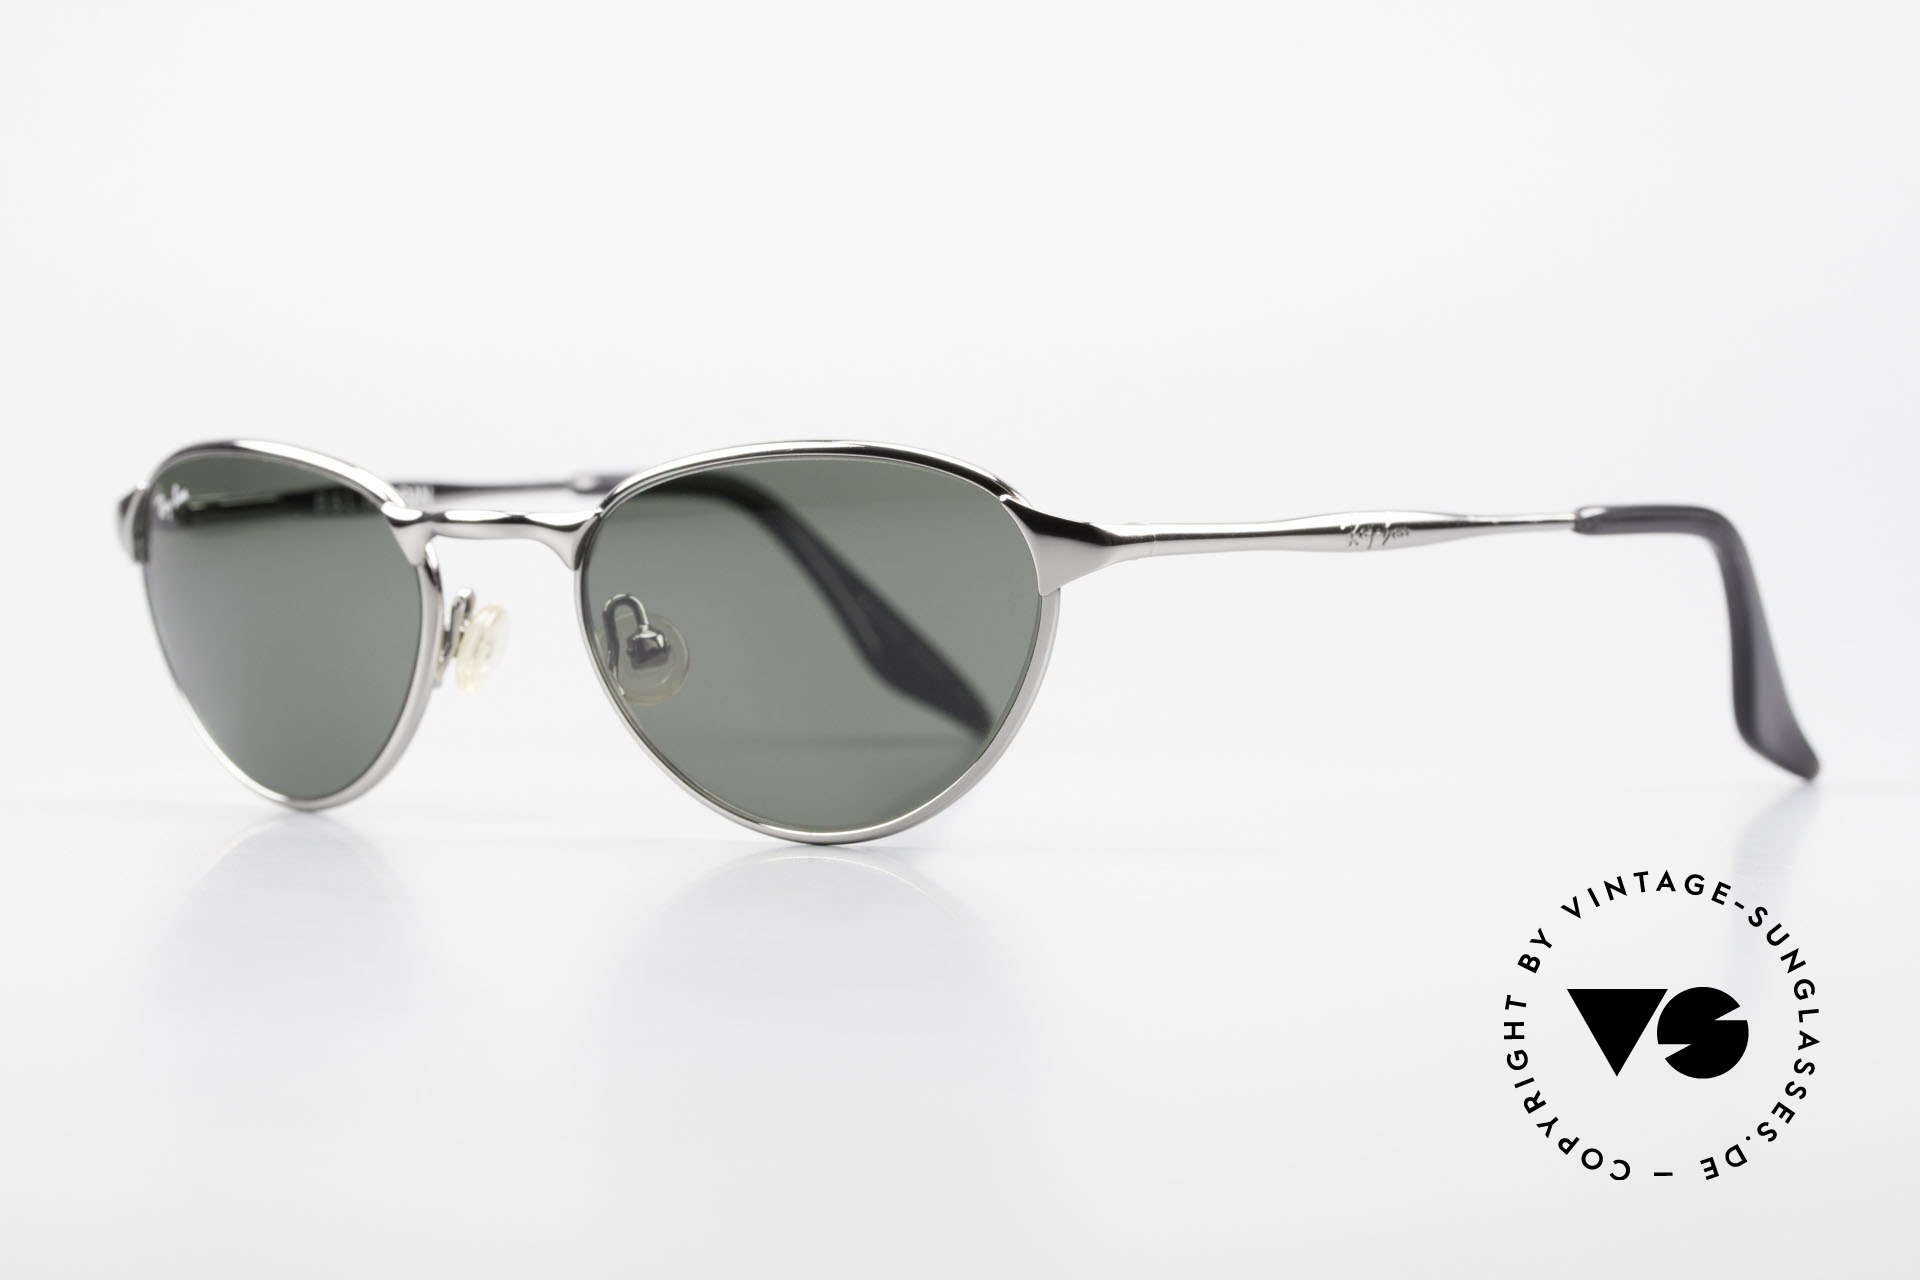 "Ray Ban Highstreet Tea Cup Last USA B&L Ray Ban Shades, in 1999, B&L sold the brand ""RAY-BAN"" to Luxottica, Made for Women"